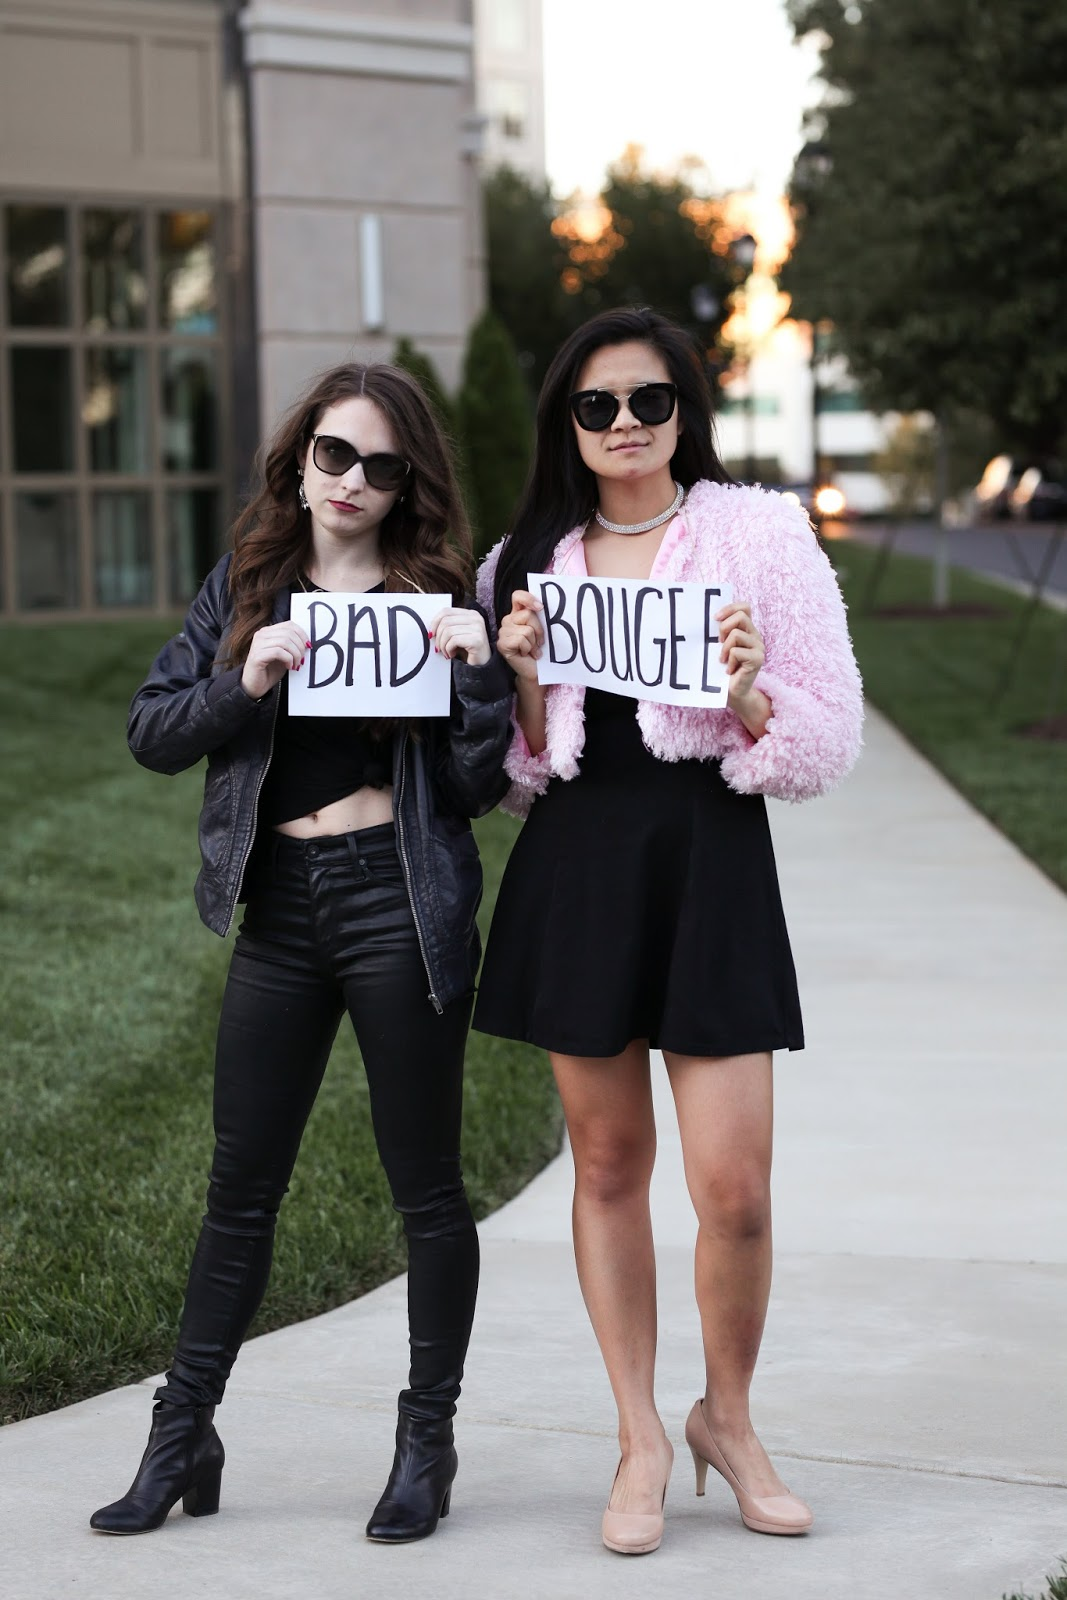 Partner halloween costume idea - bad and boujee - diy costume